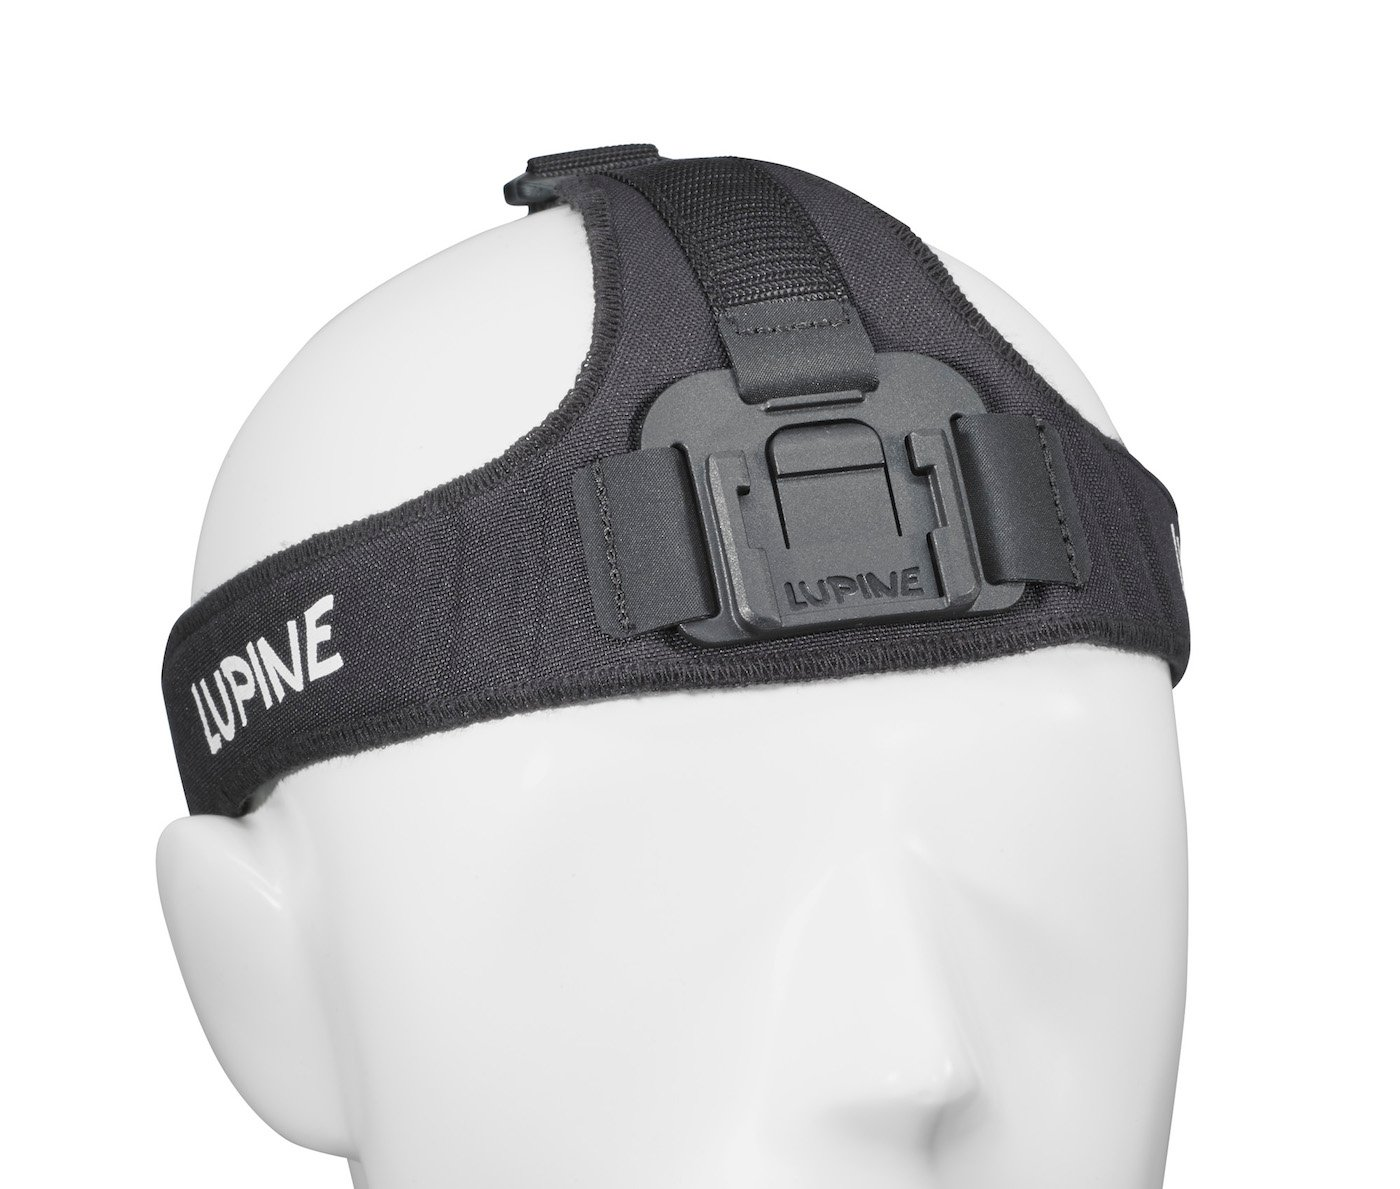 HD FrontClick Headband for PikoR/BlikaR